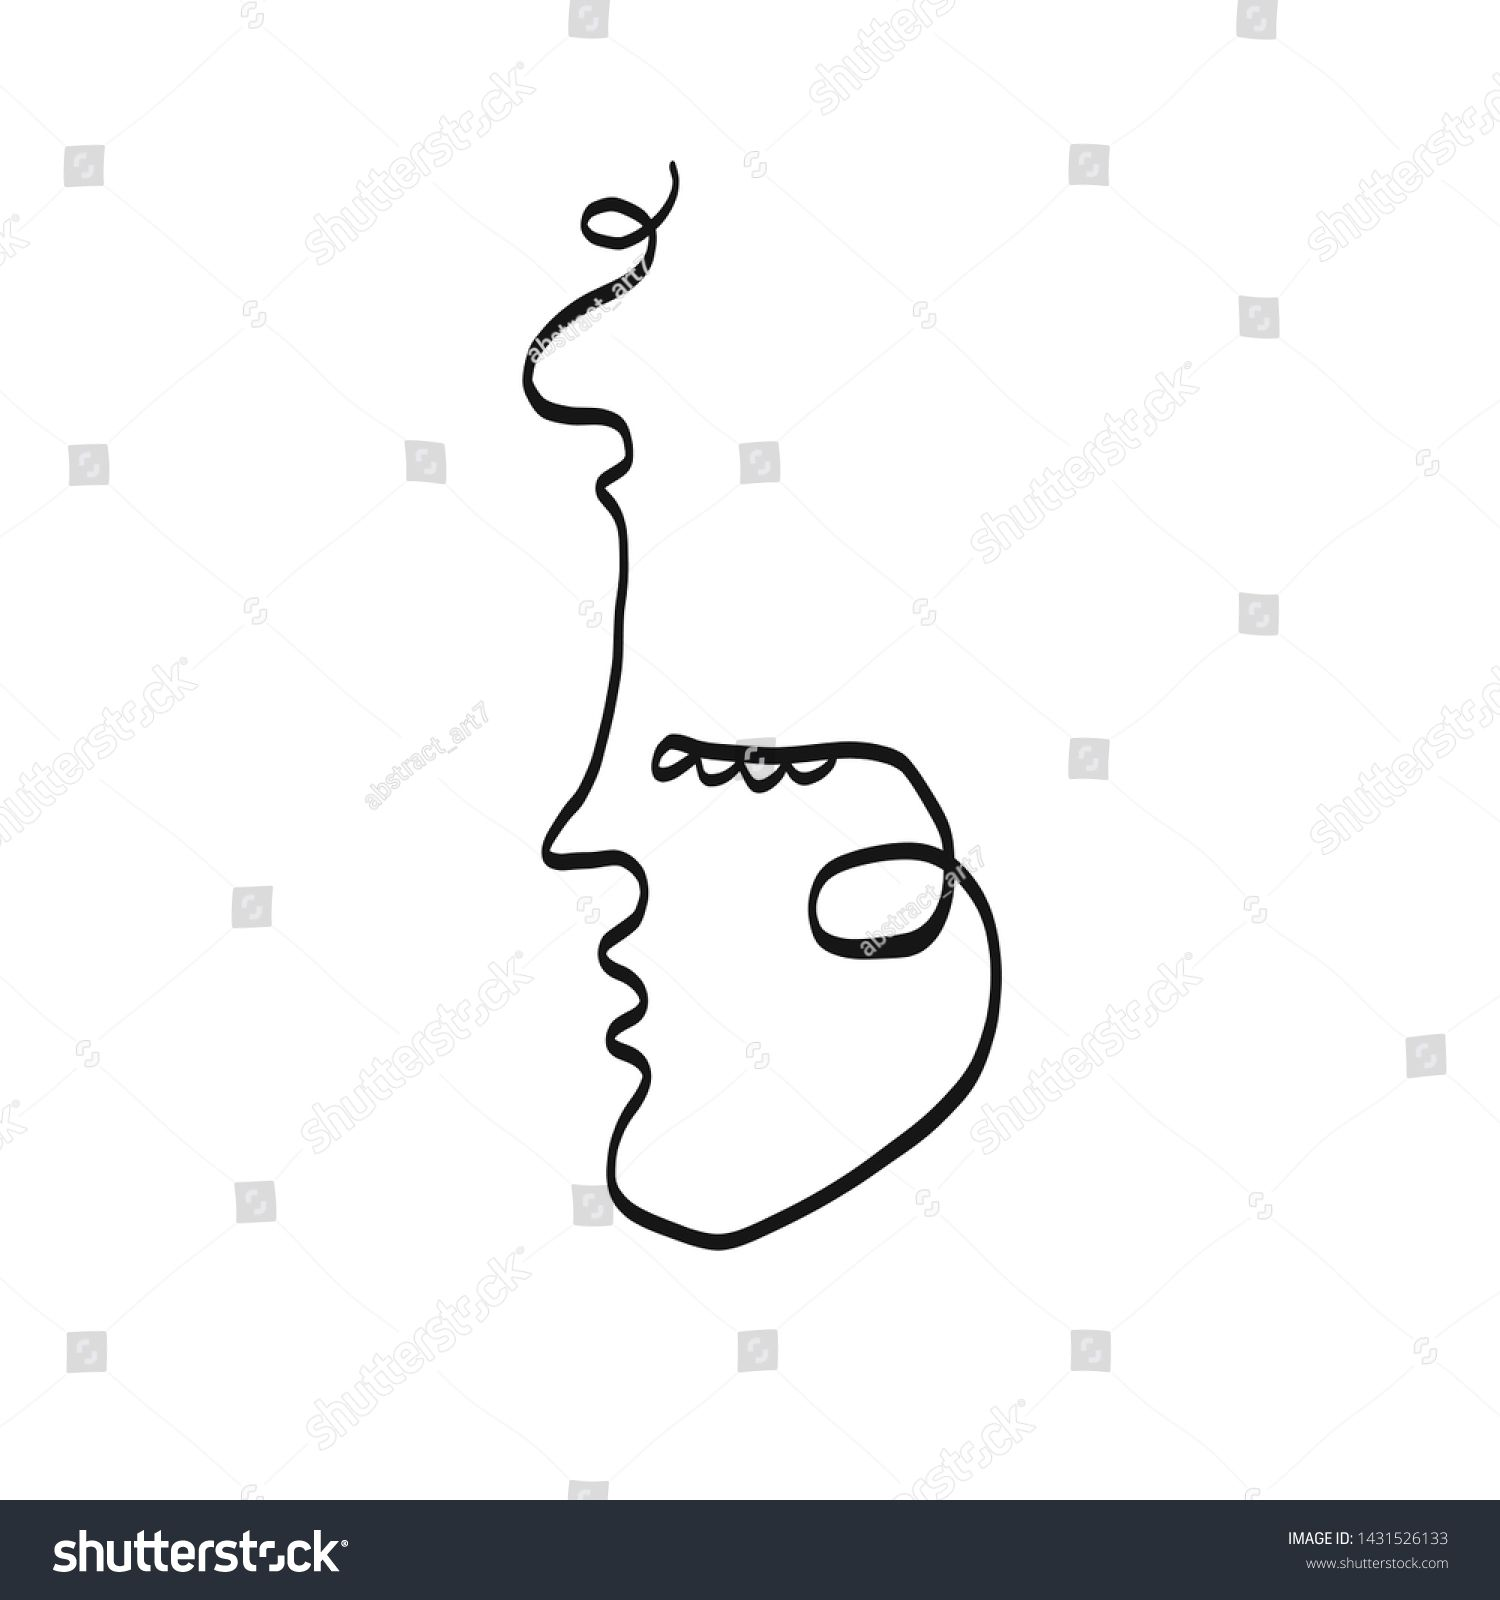 Stylized woman abstract portrait in modern outline graphic style One line drawing Continuous painting human face Aesthetic control contemporary art